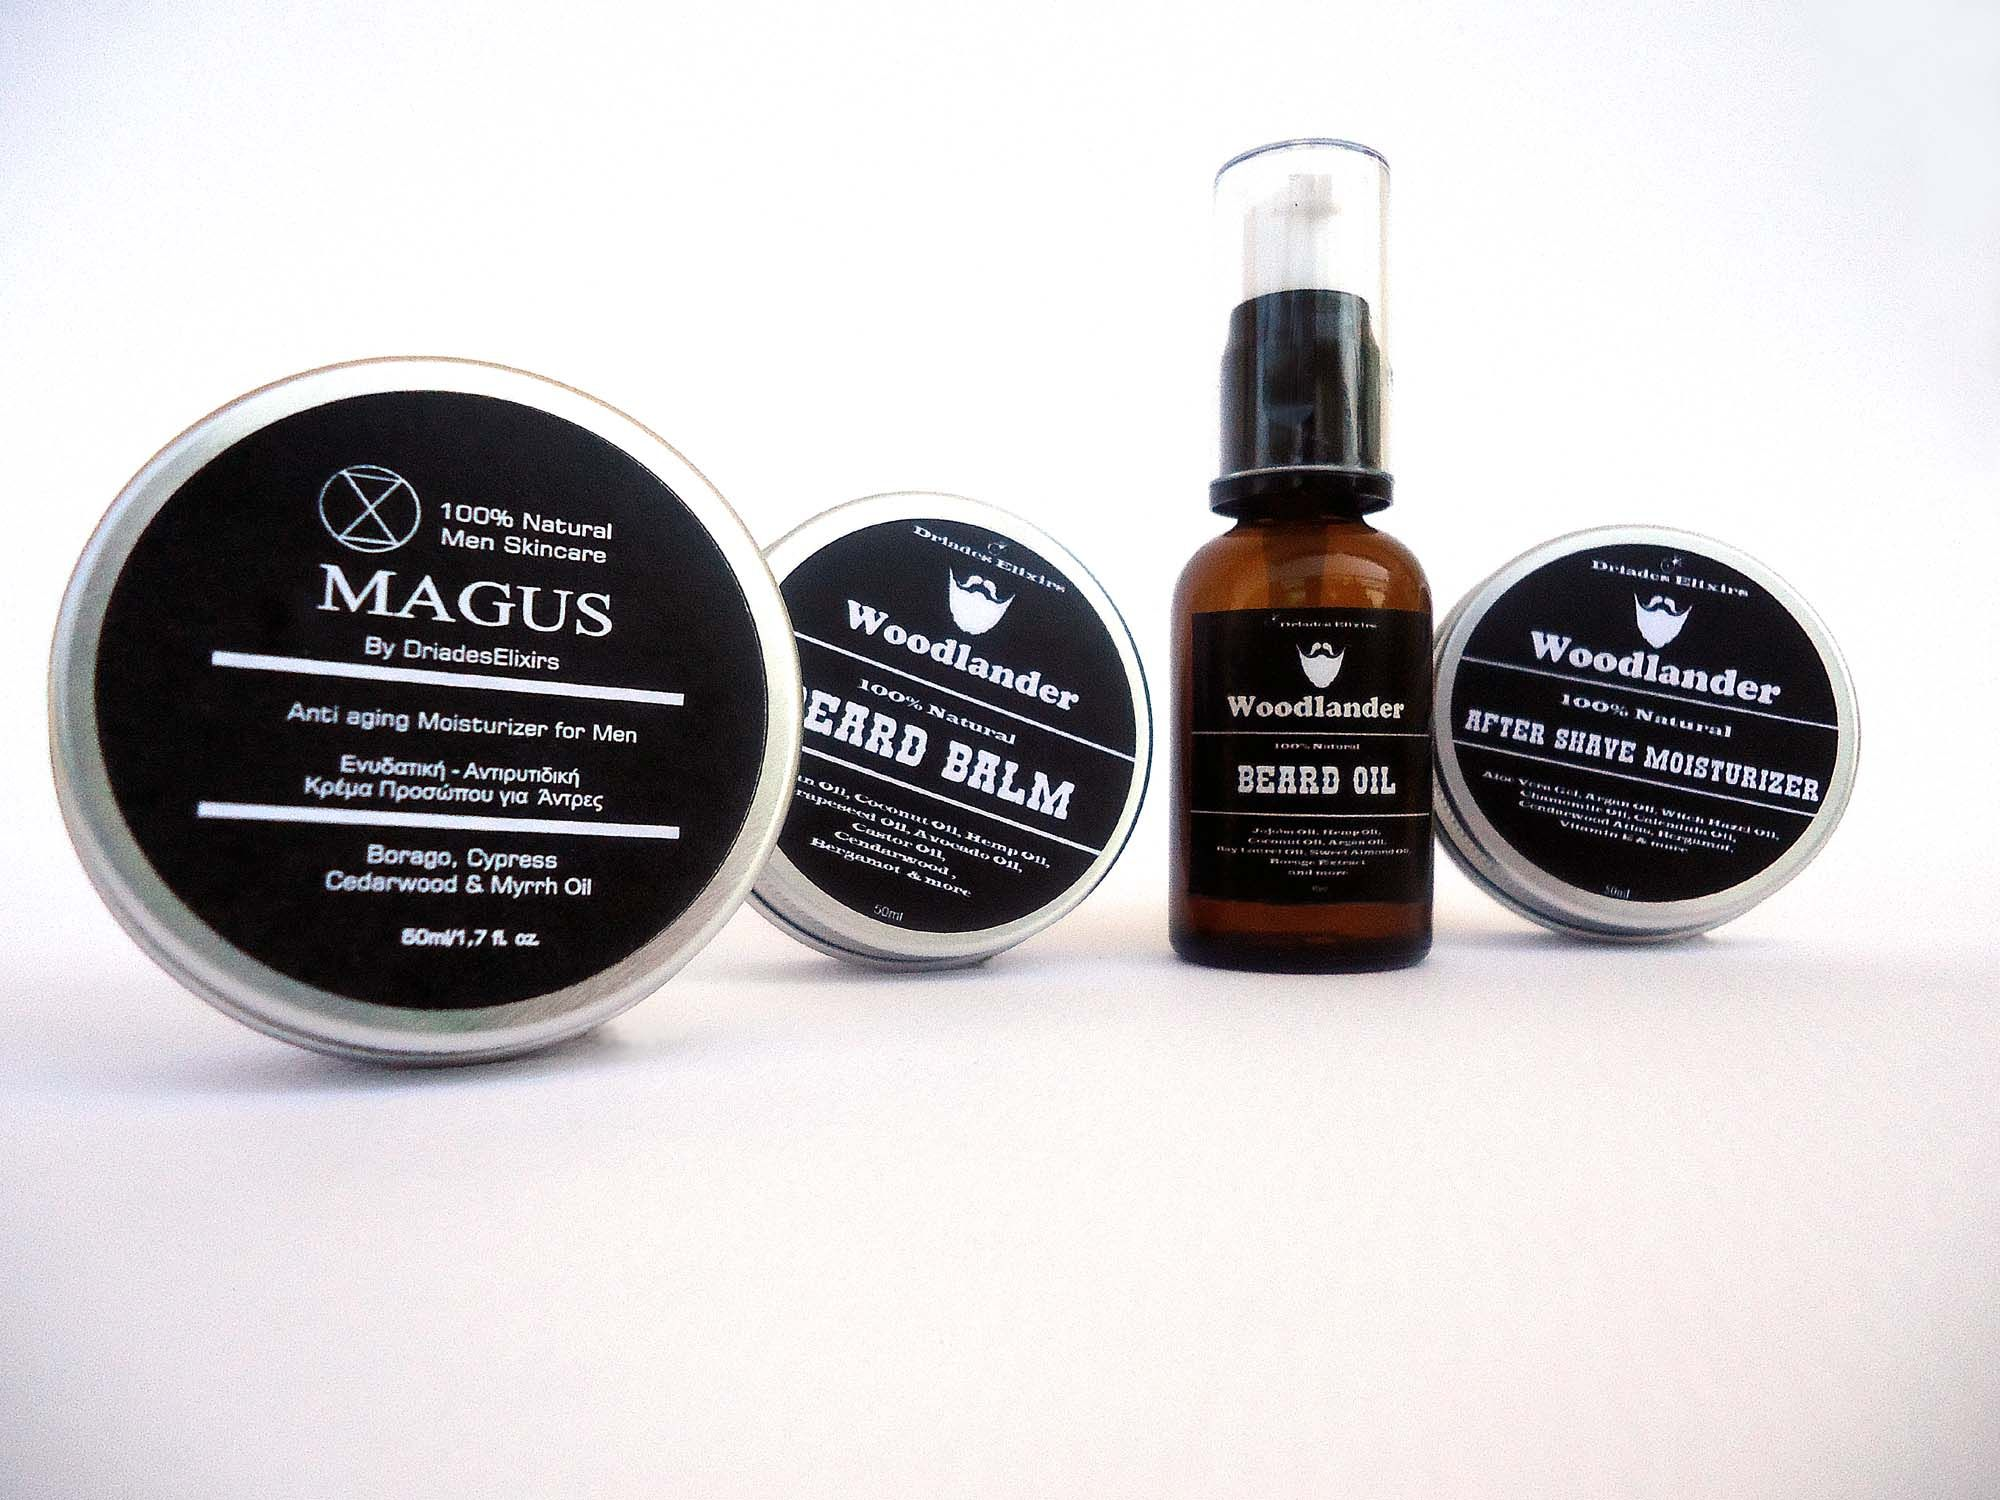 Luxury All Natural Skin Care Products For Men Zero Waste Non Toxic Face Moisturizer Beard Oil Beard Balm Natural Skin Care Herbal Skin Care Skin Care Gifts